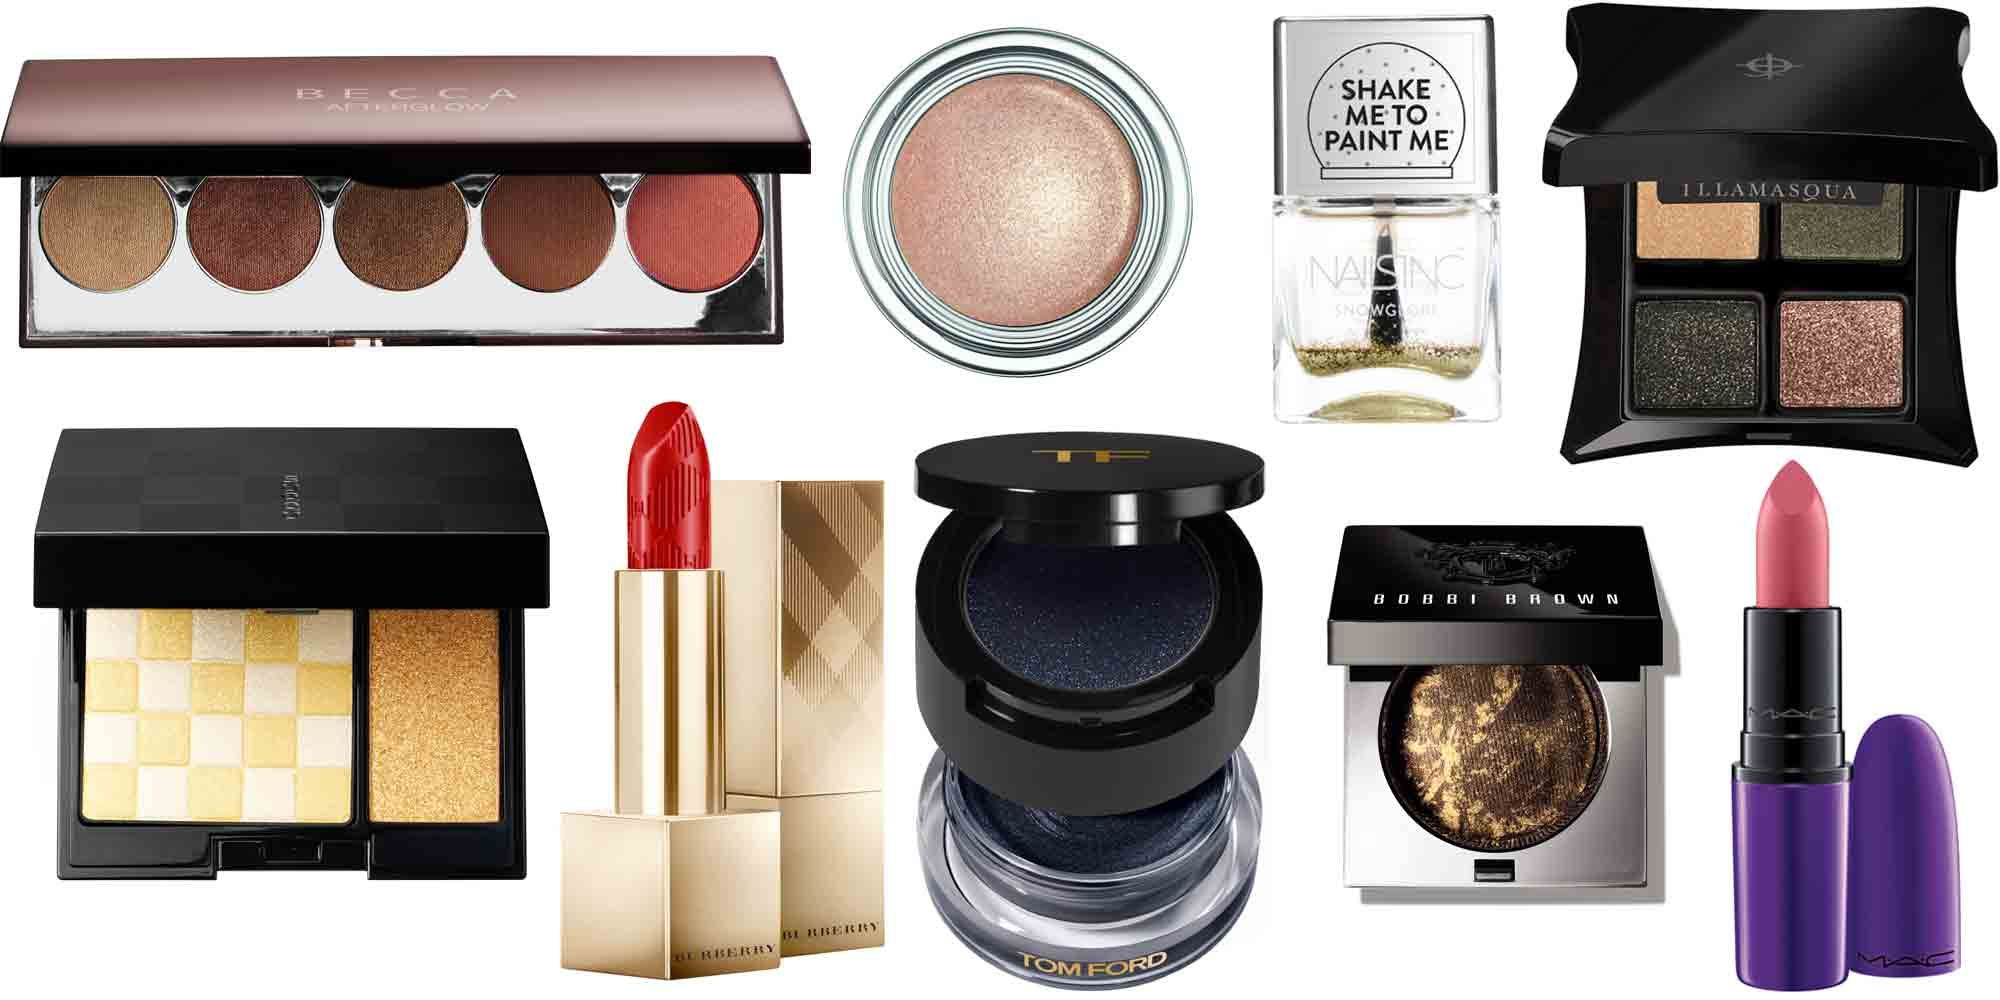 Our Christmas Beauty Lust List Tom Ford Trousseau, Anyone